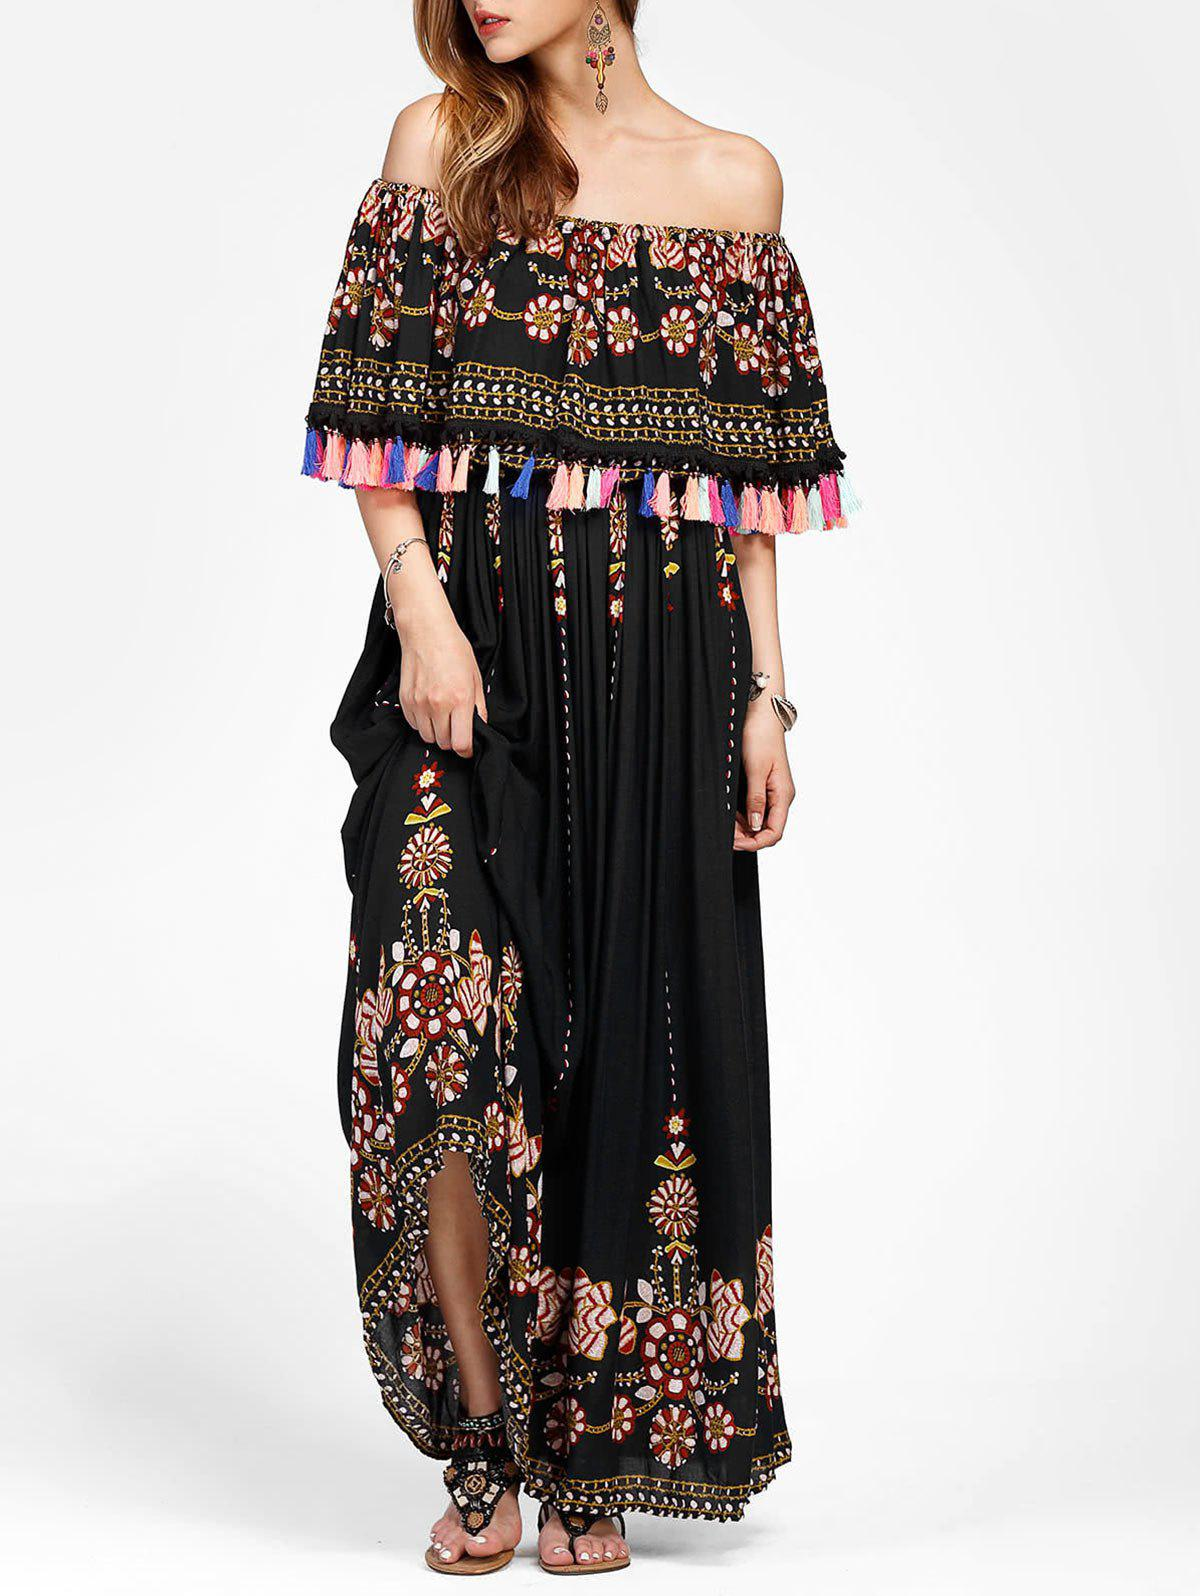 9addd3ab7c 44% OFF] Bohemian Off Shoulder Ruffled Floral Print Maxi Dress | Rosegal